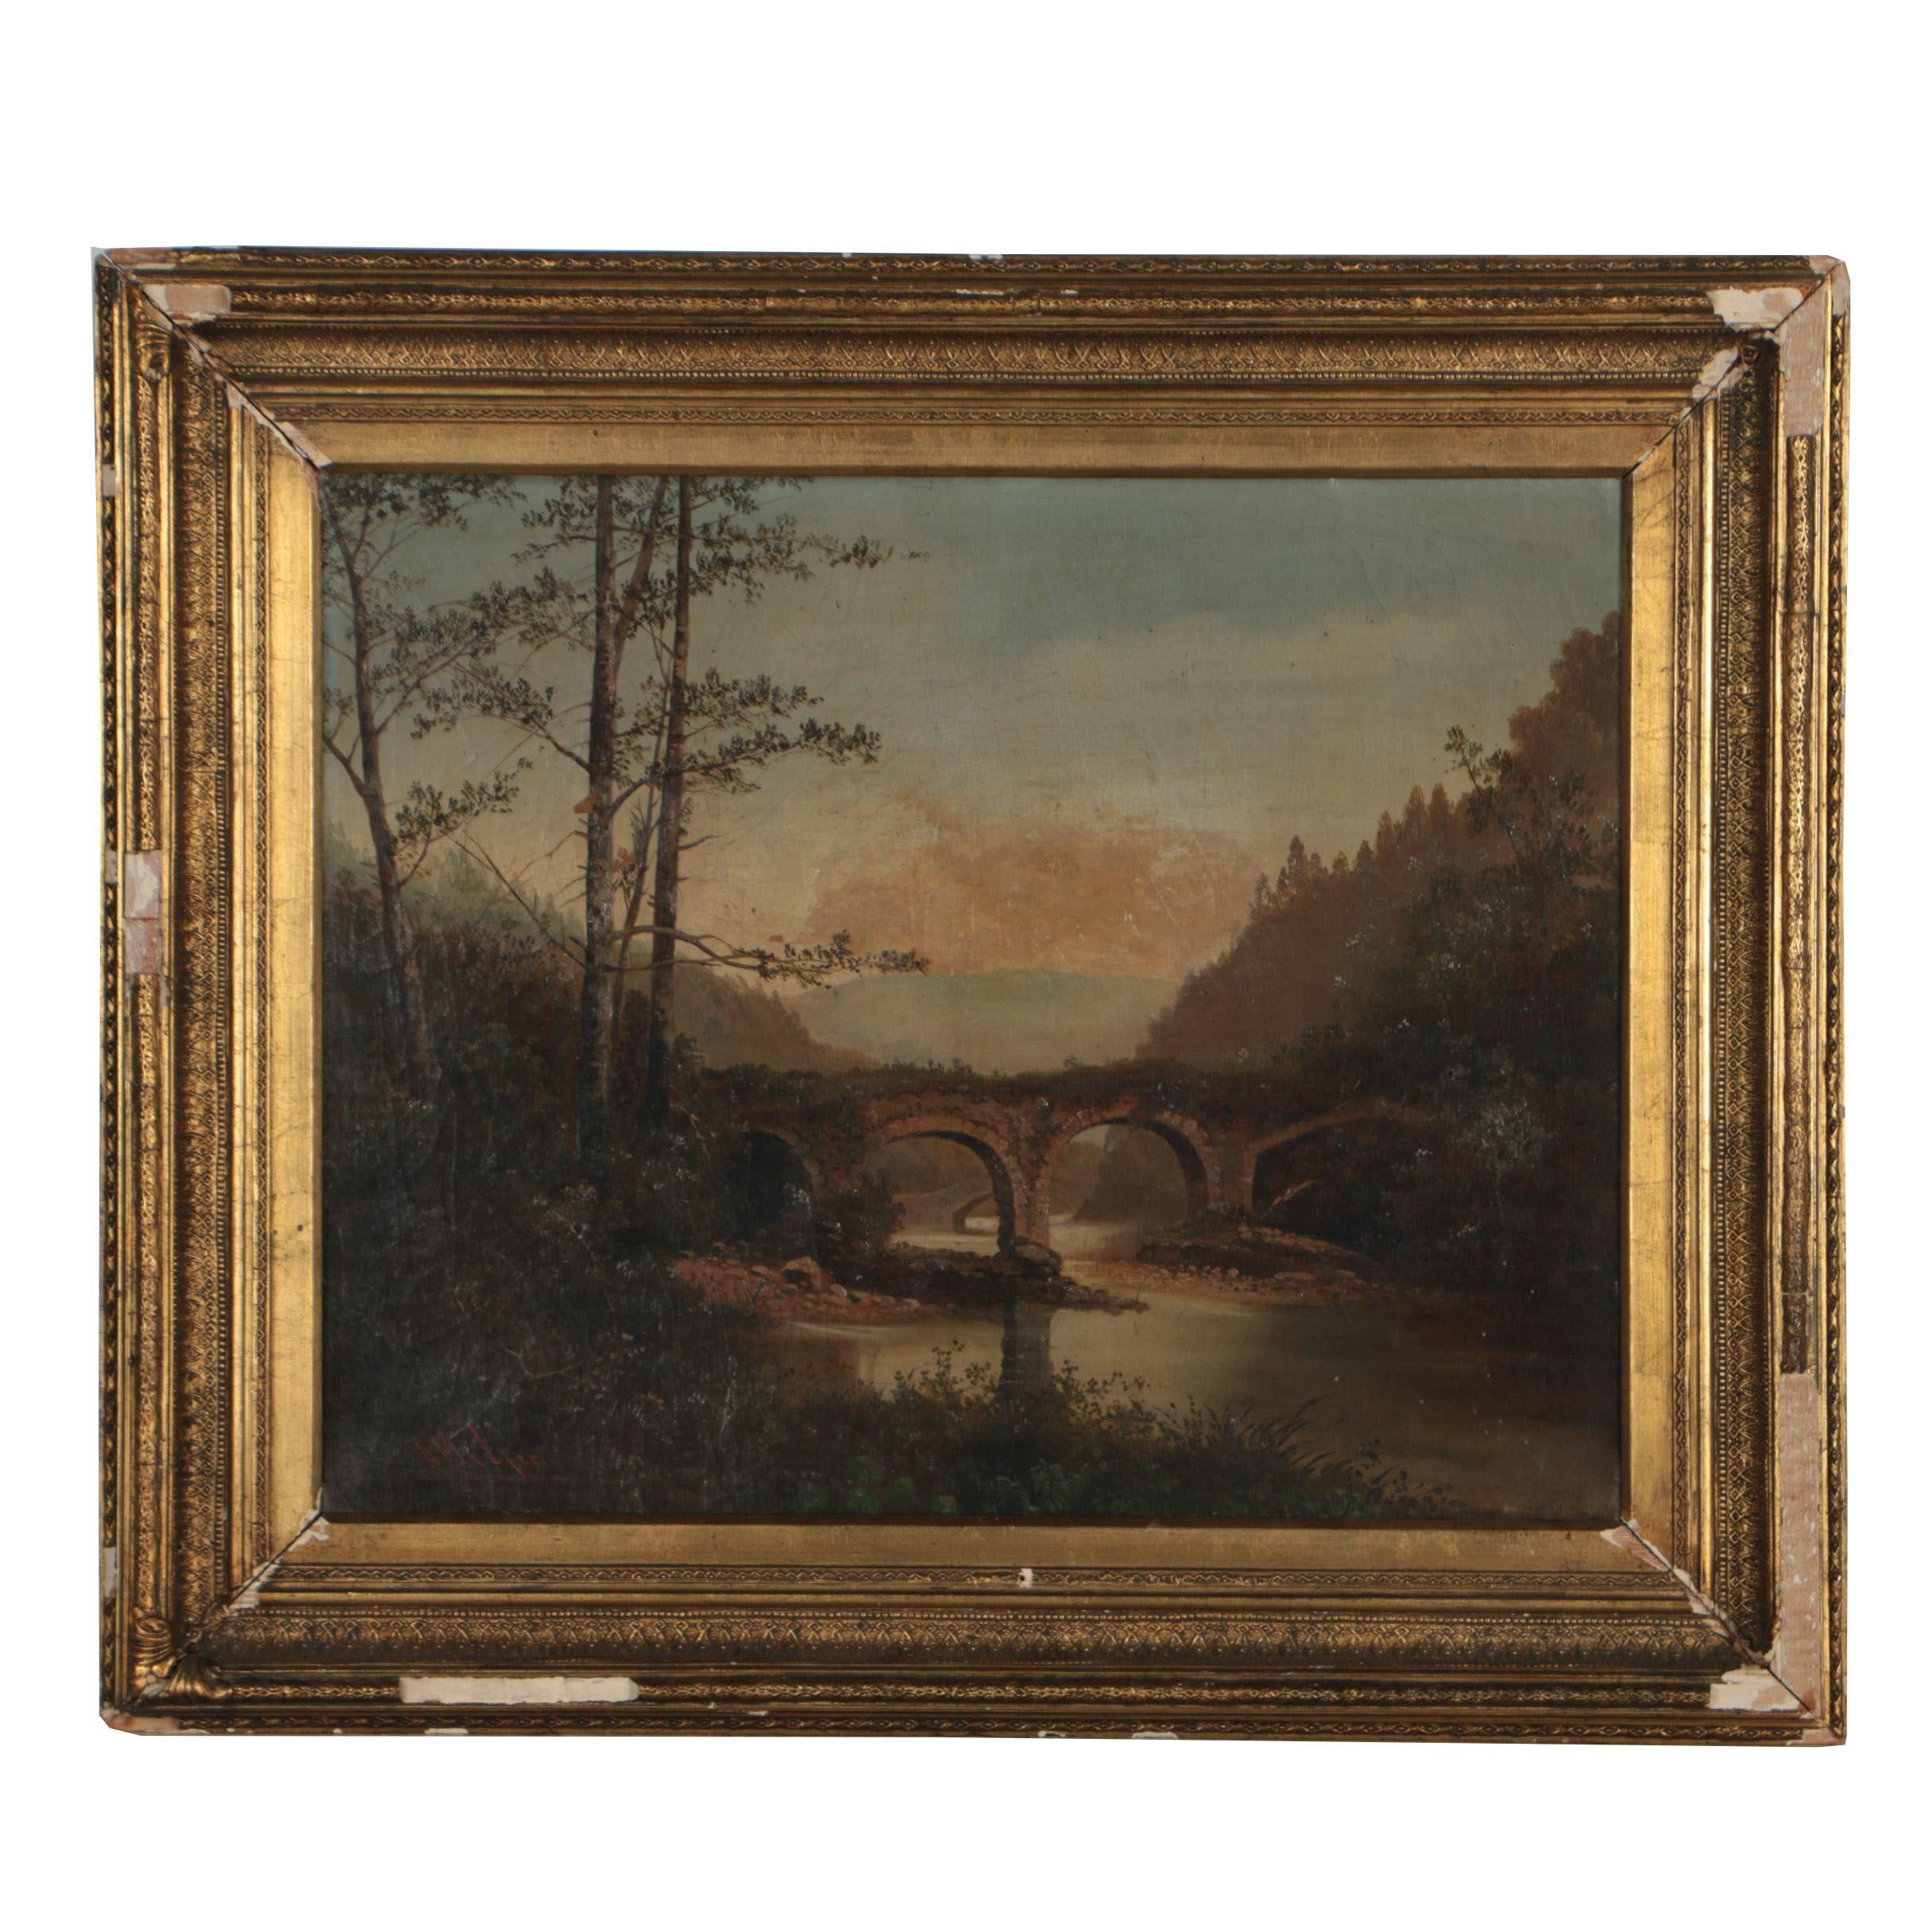 A. Melzer 19th Century Landscape Oil Painting